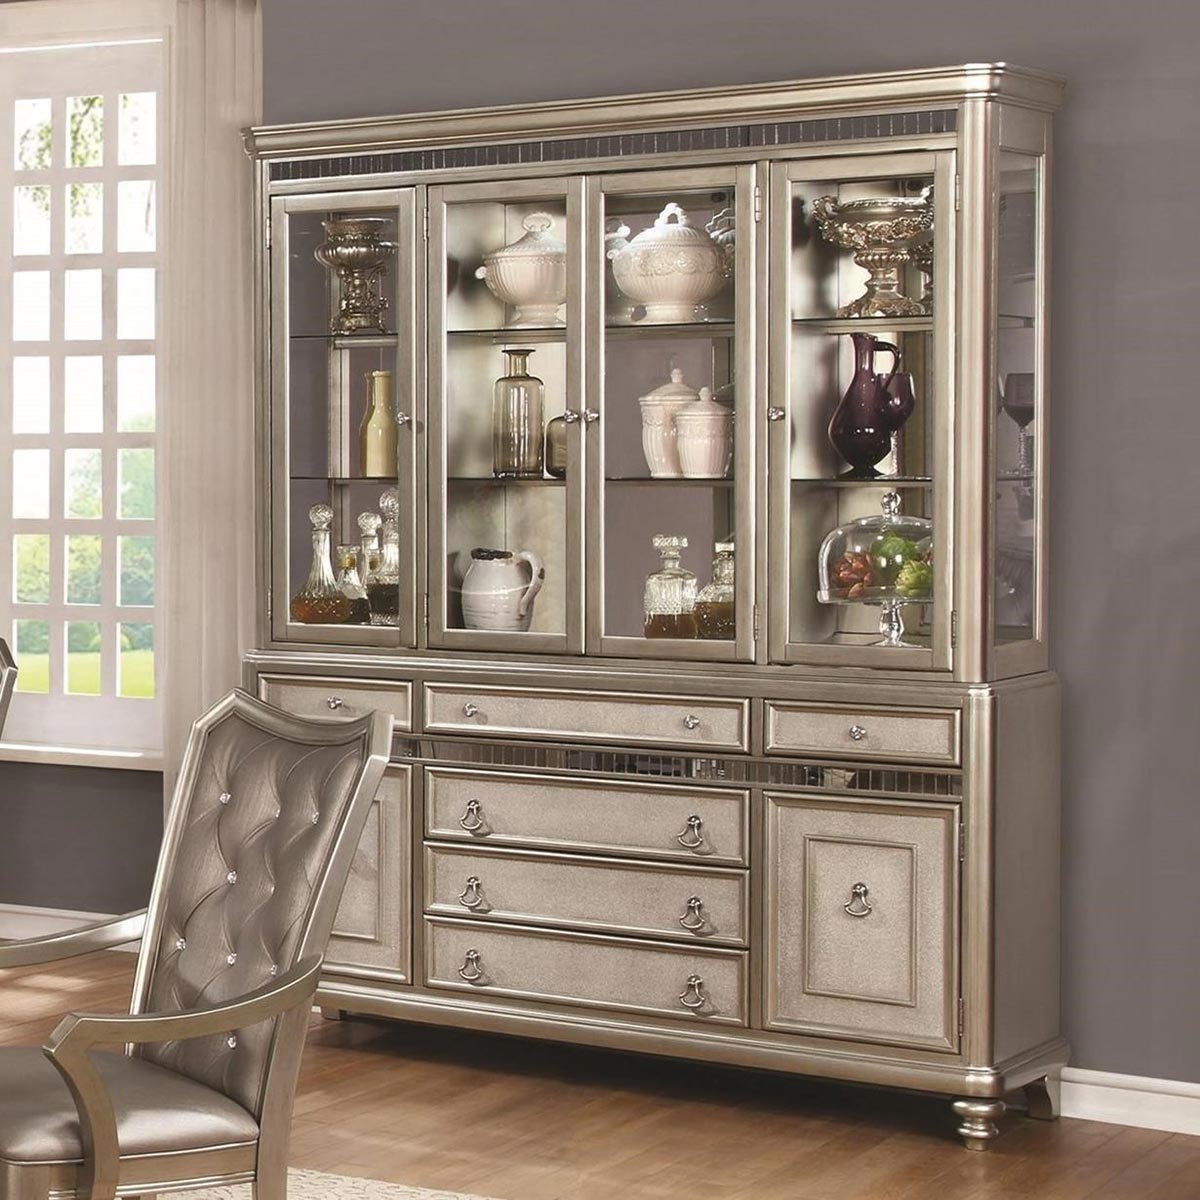 Coaster Danette China Cabinet - Metallic Platinum